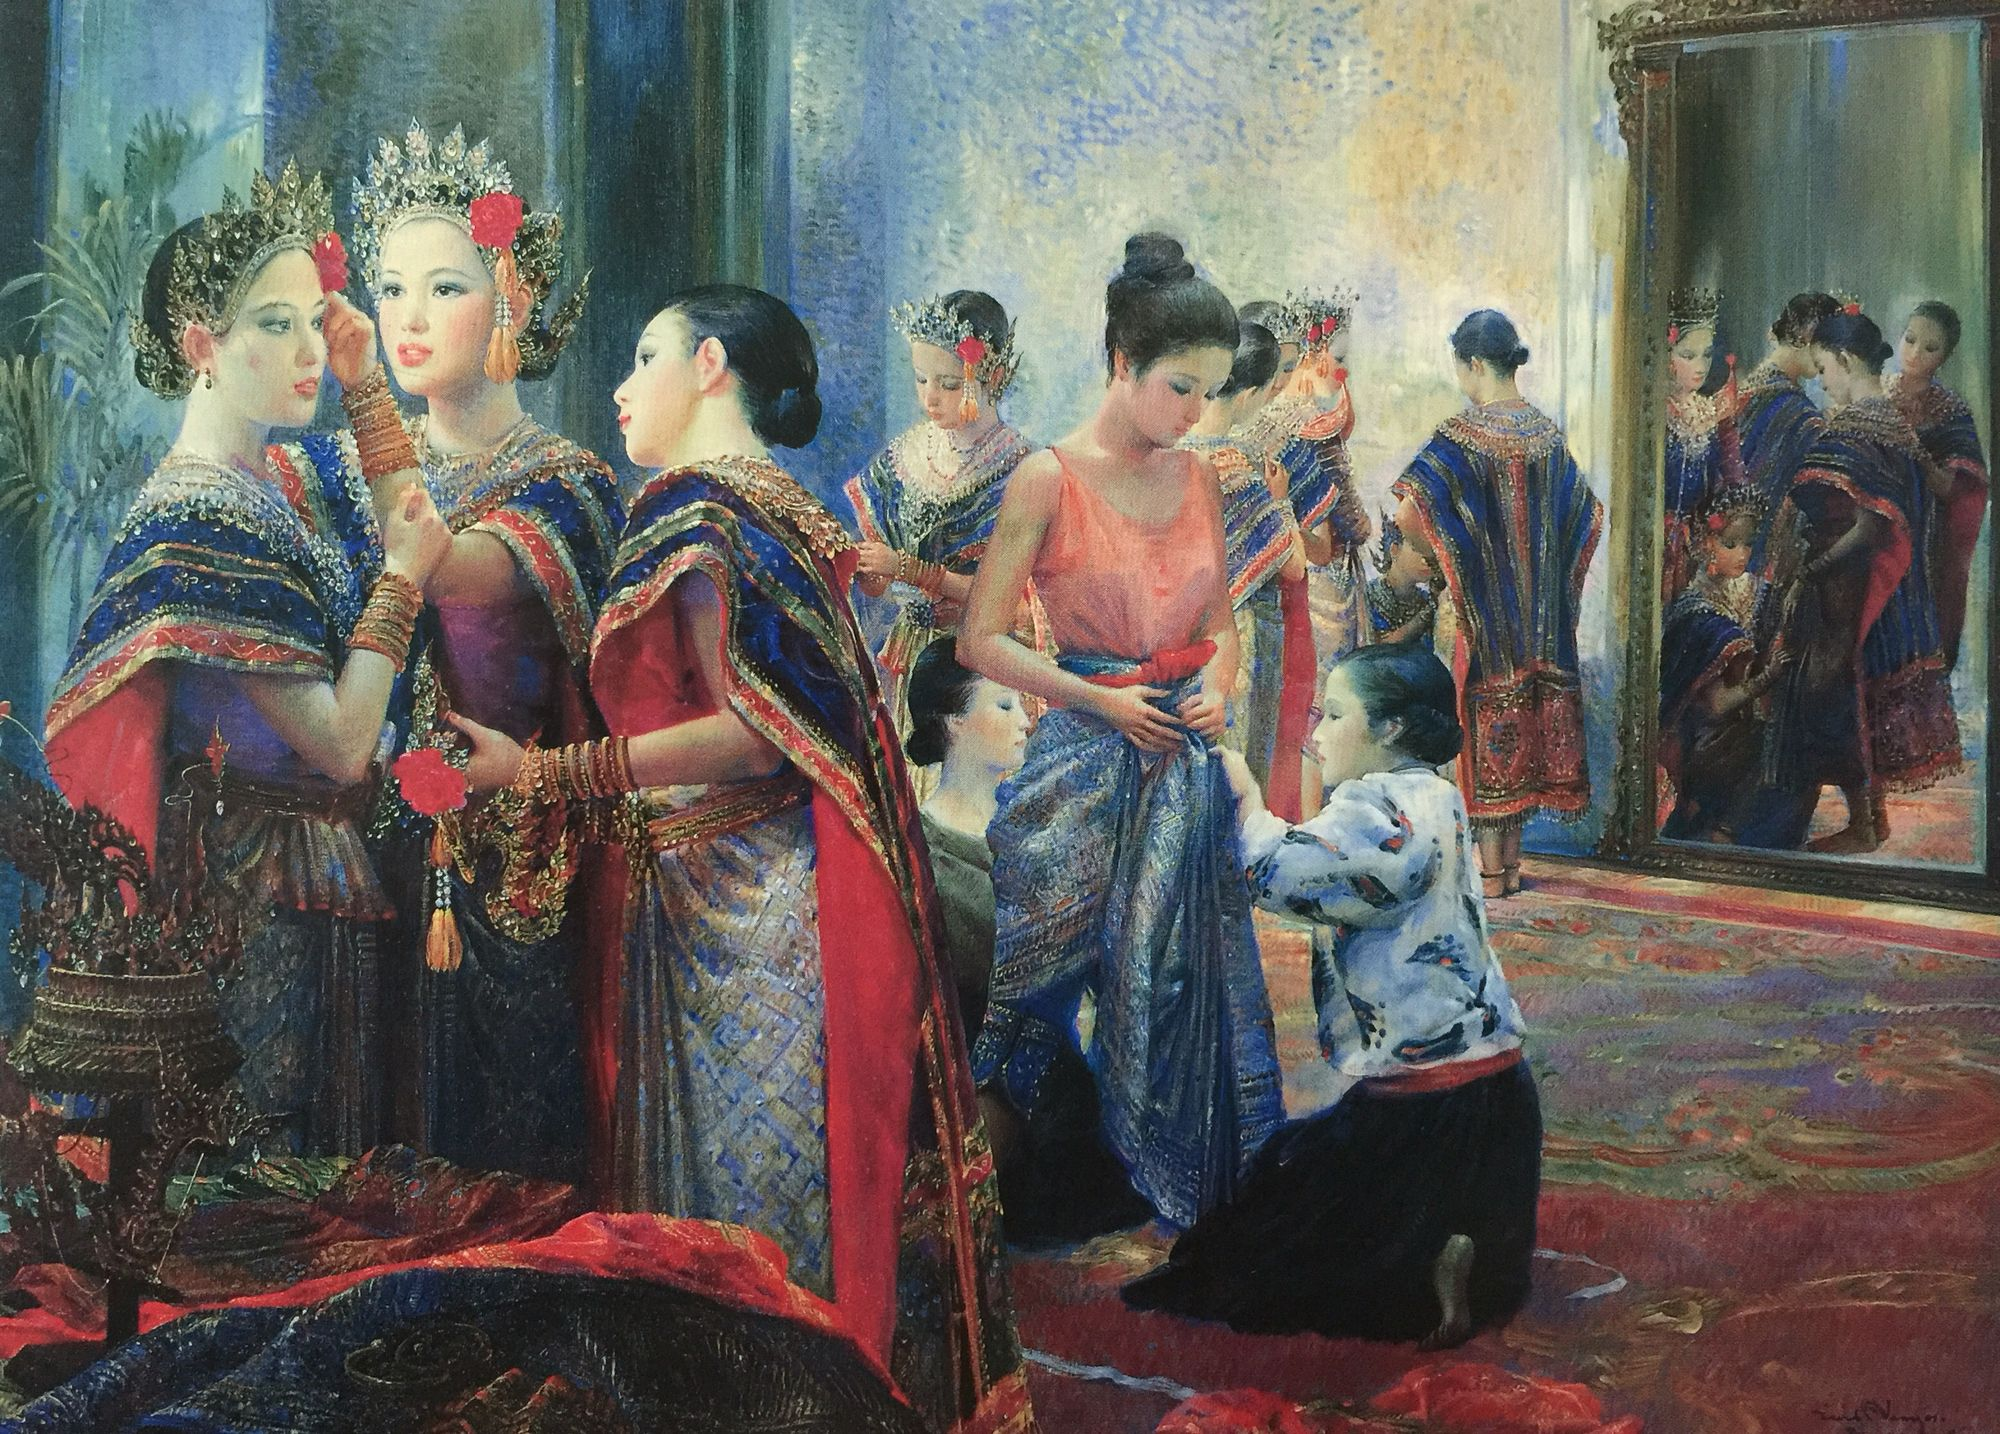 """Before the performance"", 1990, oil on canvas, by Chakrabhand Posayakrit, a Thai national artist"